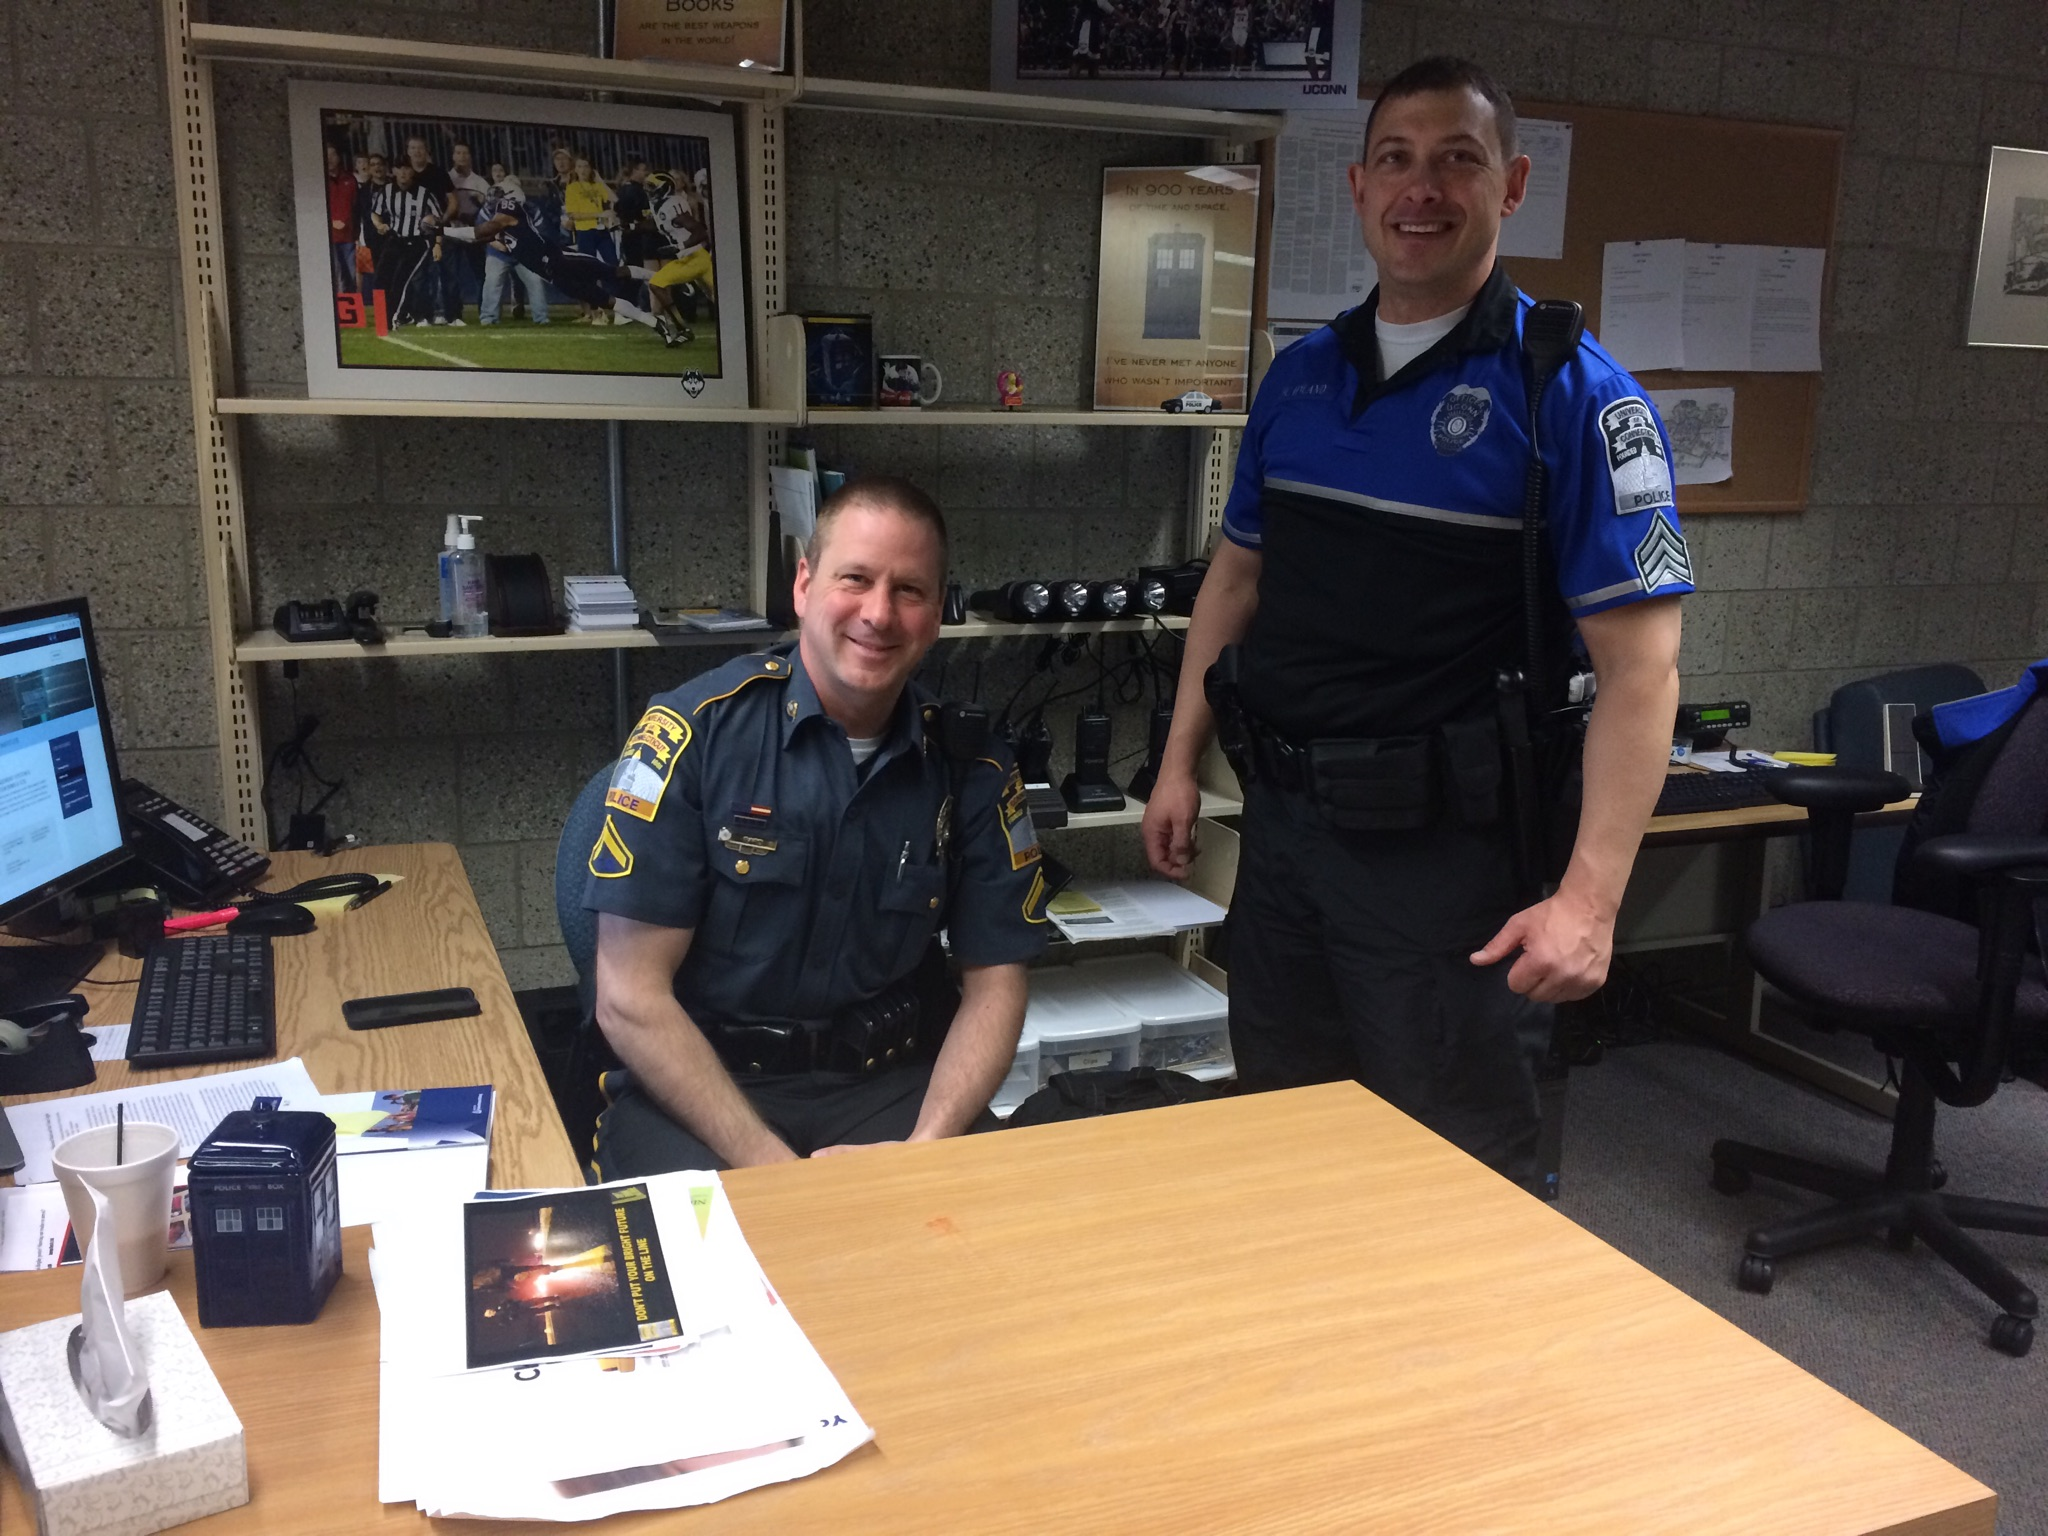 Officer Eric Bard (left) and Sergeant Jason Hyland man the Babbidge Library Substation, which aims to improve communication between students and the police.